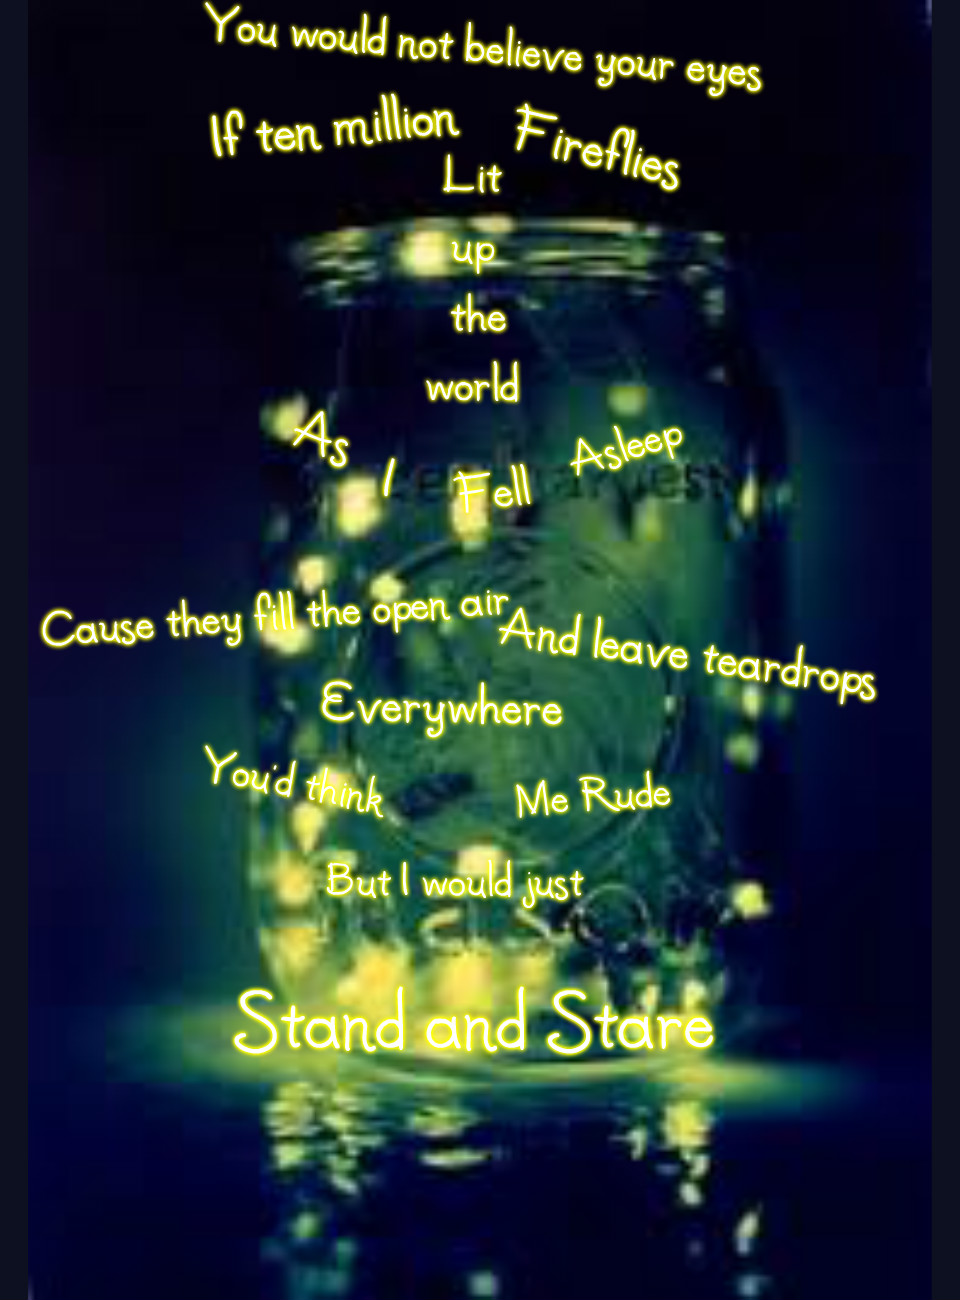 Quotes About Fireflies Quotesgram